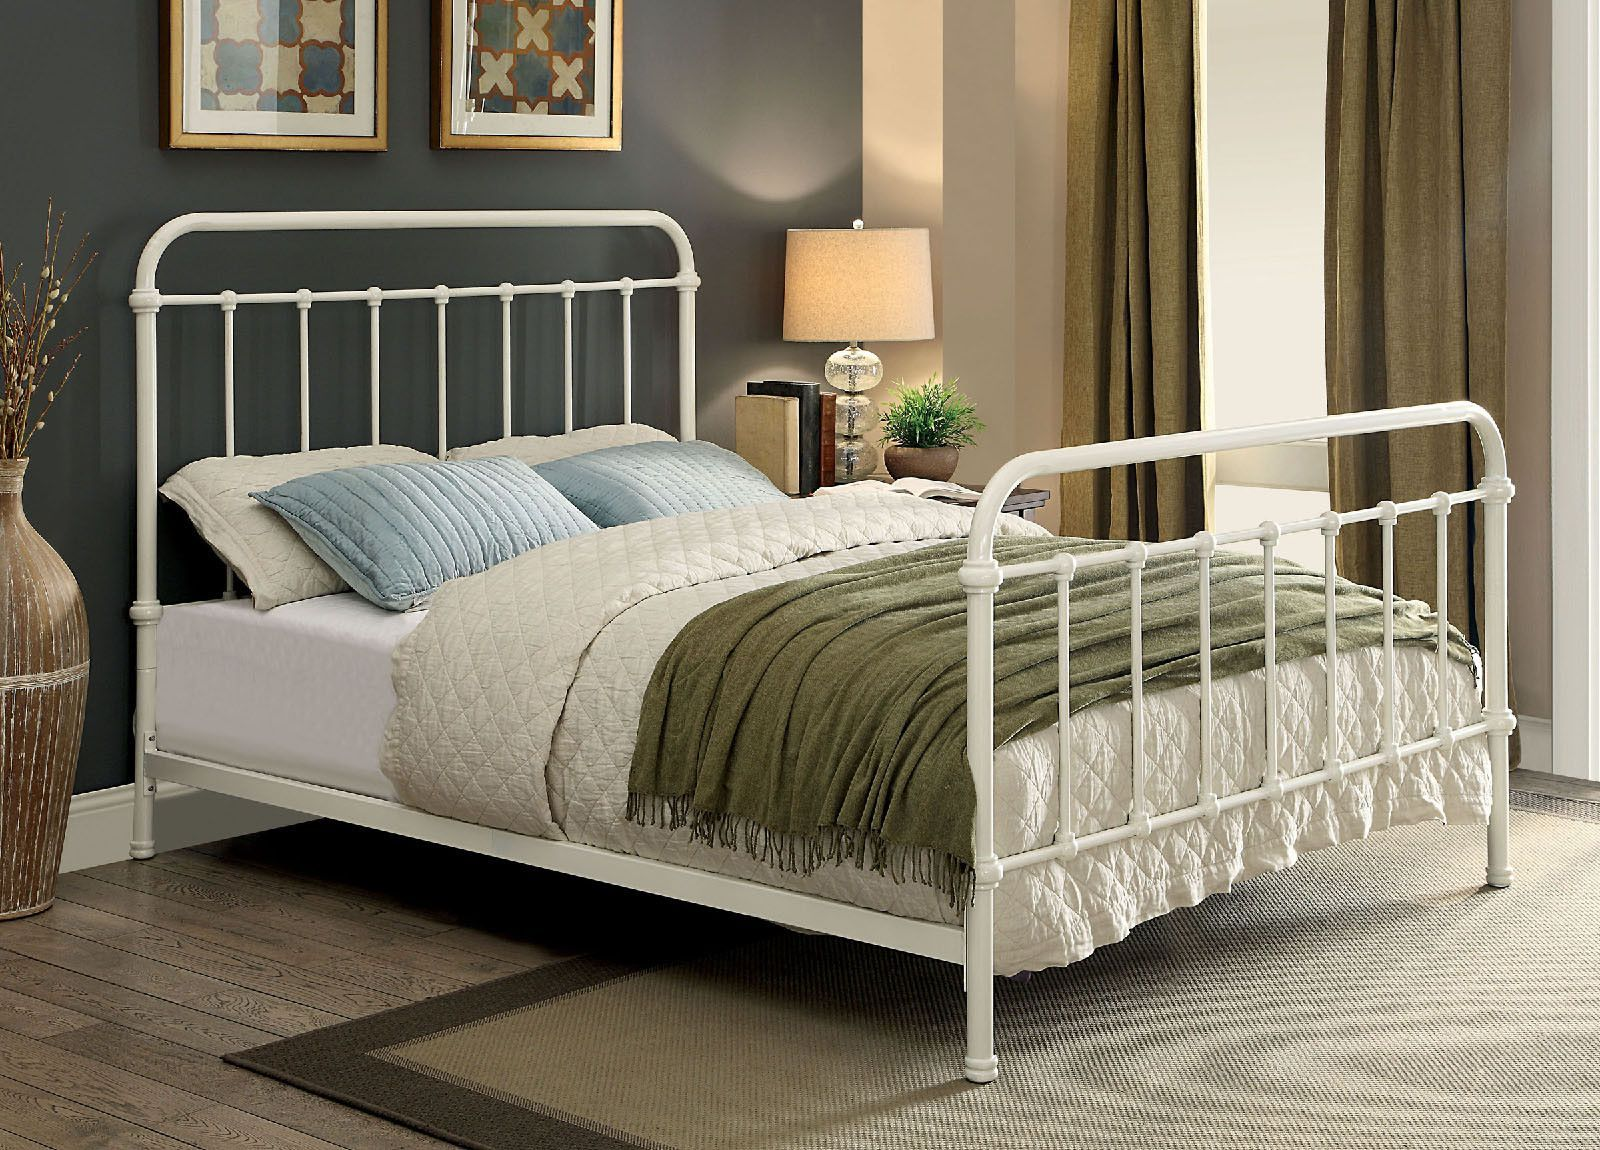 Iria Collection Bed CM7701WH White metal bed, White